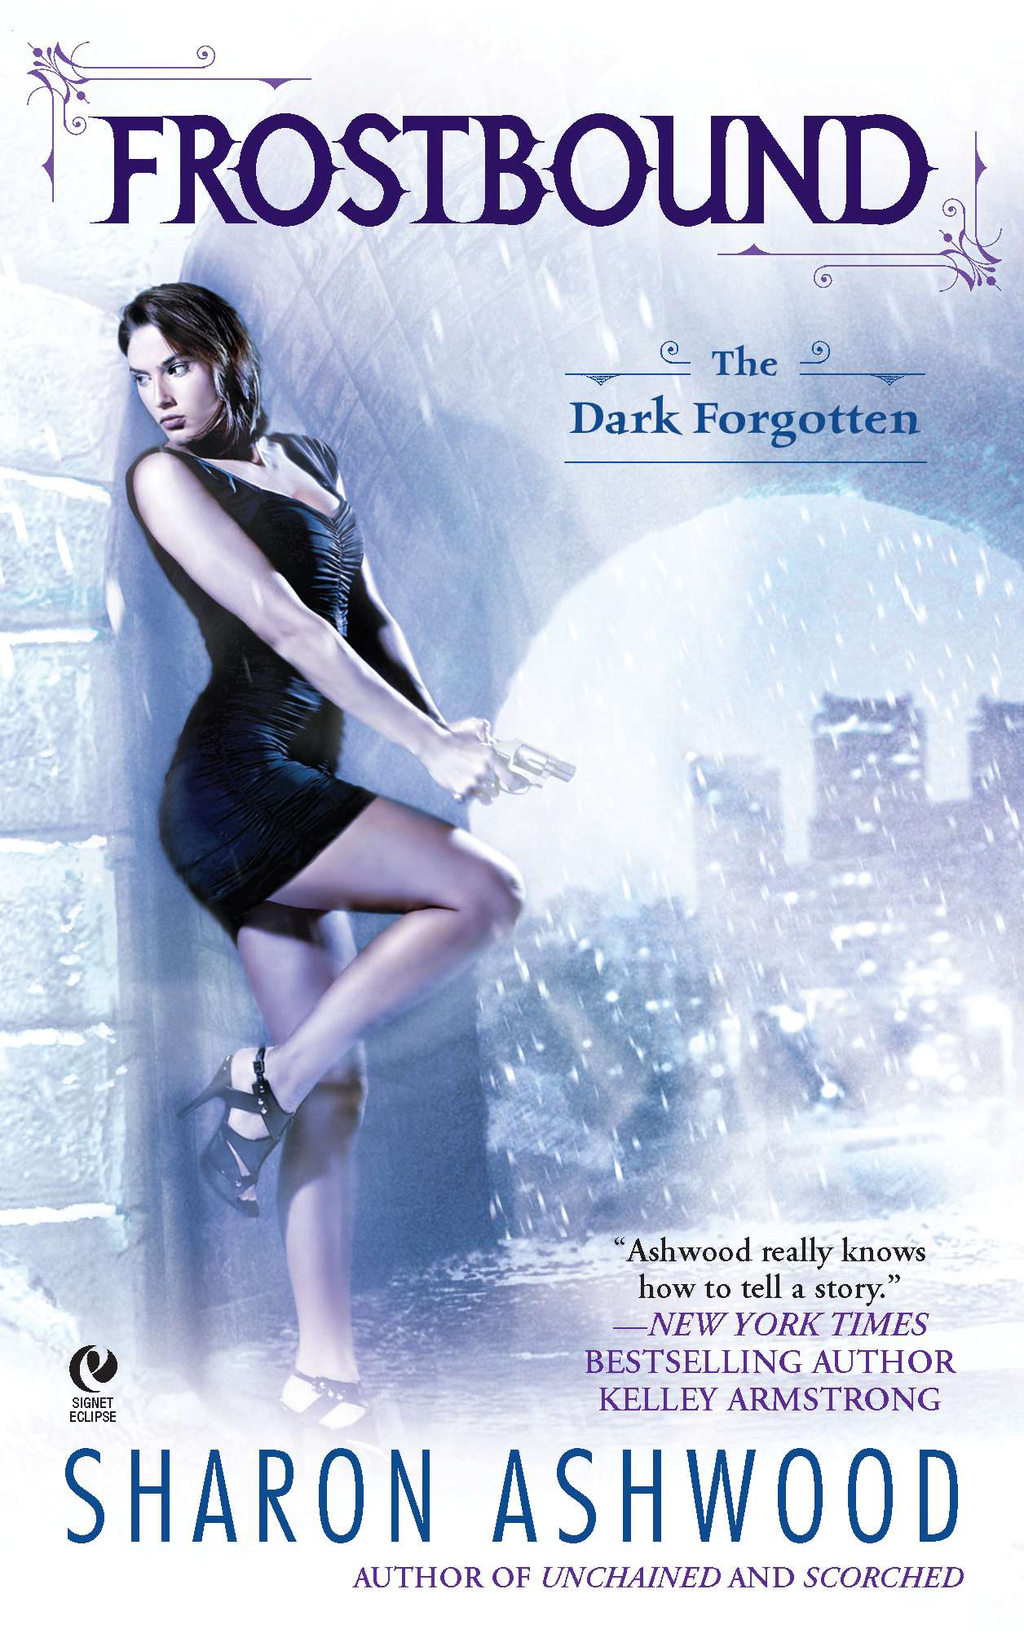 Frostbound: The Dark Forgotten By: Sharon Ashwood